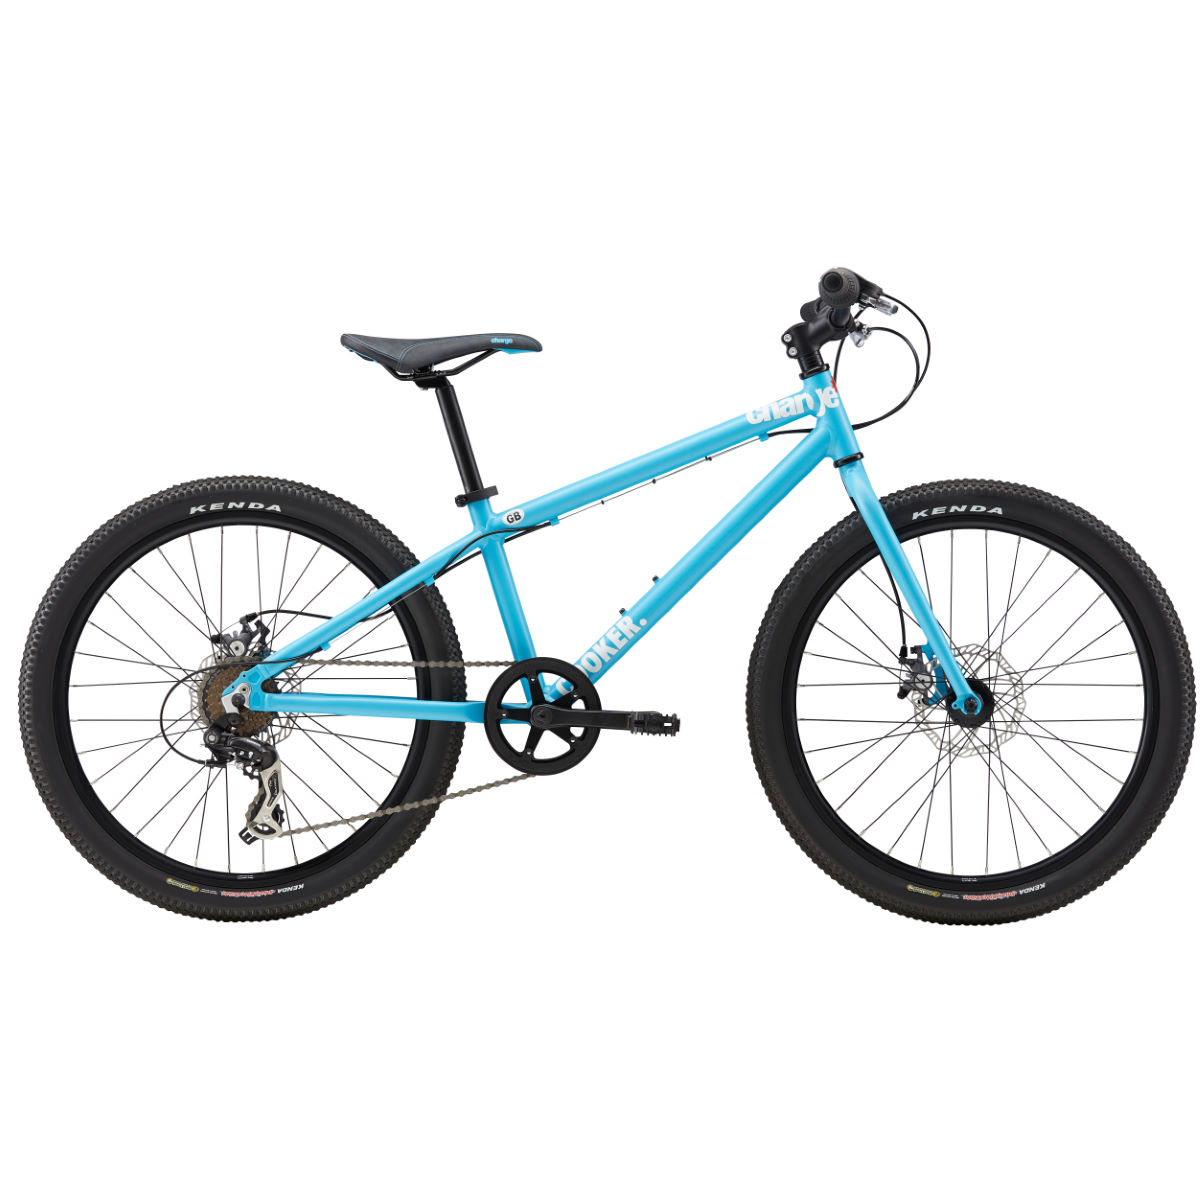 Vélo Enfant Charge Cooker 24 (2017) - One Size Stock Bike Bleu